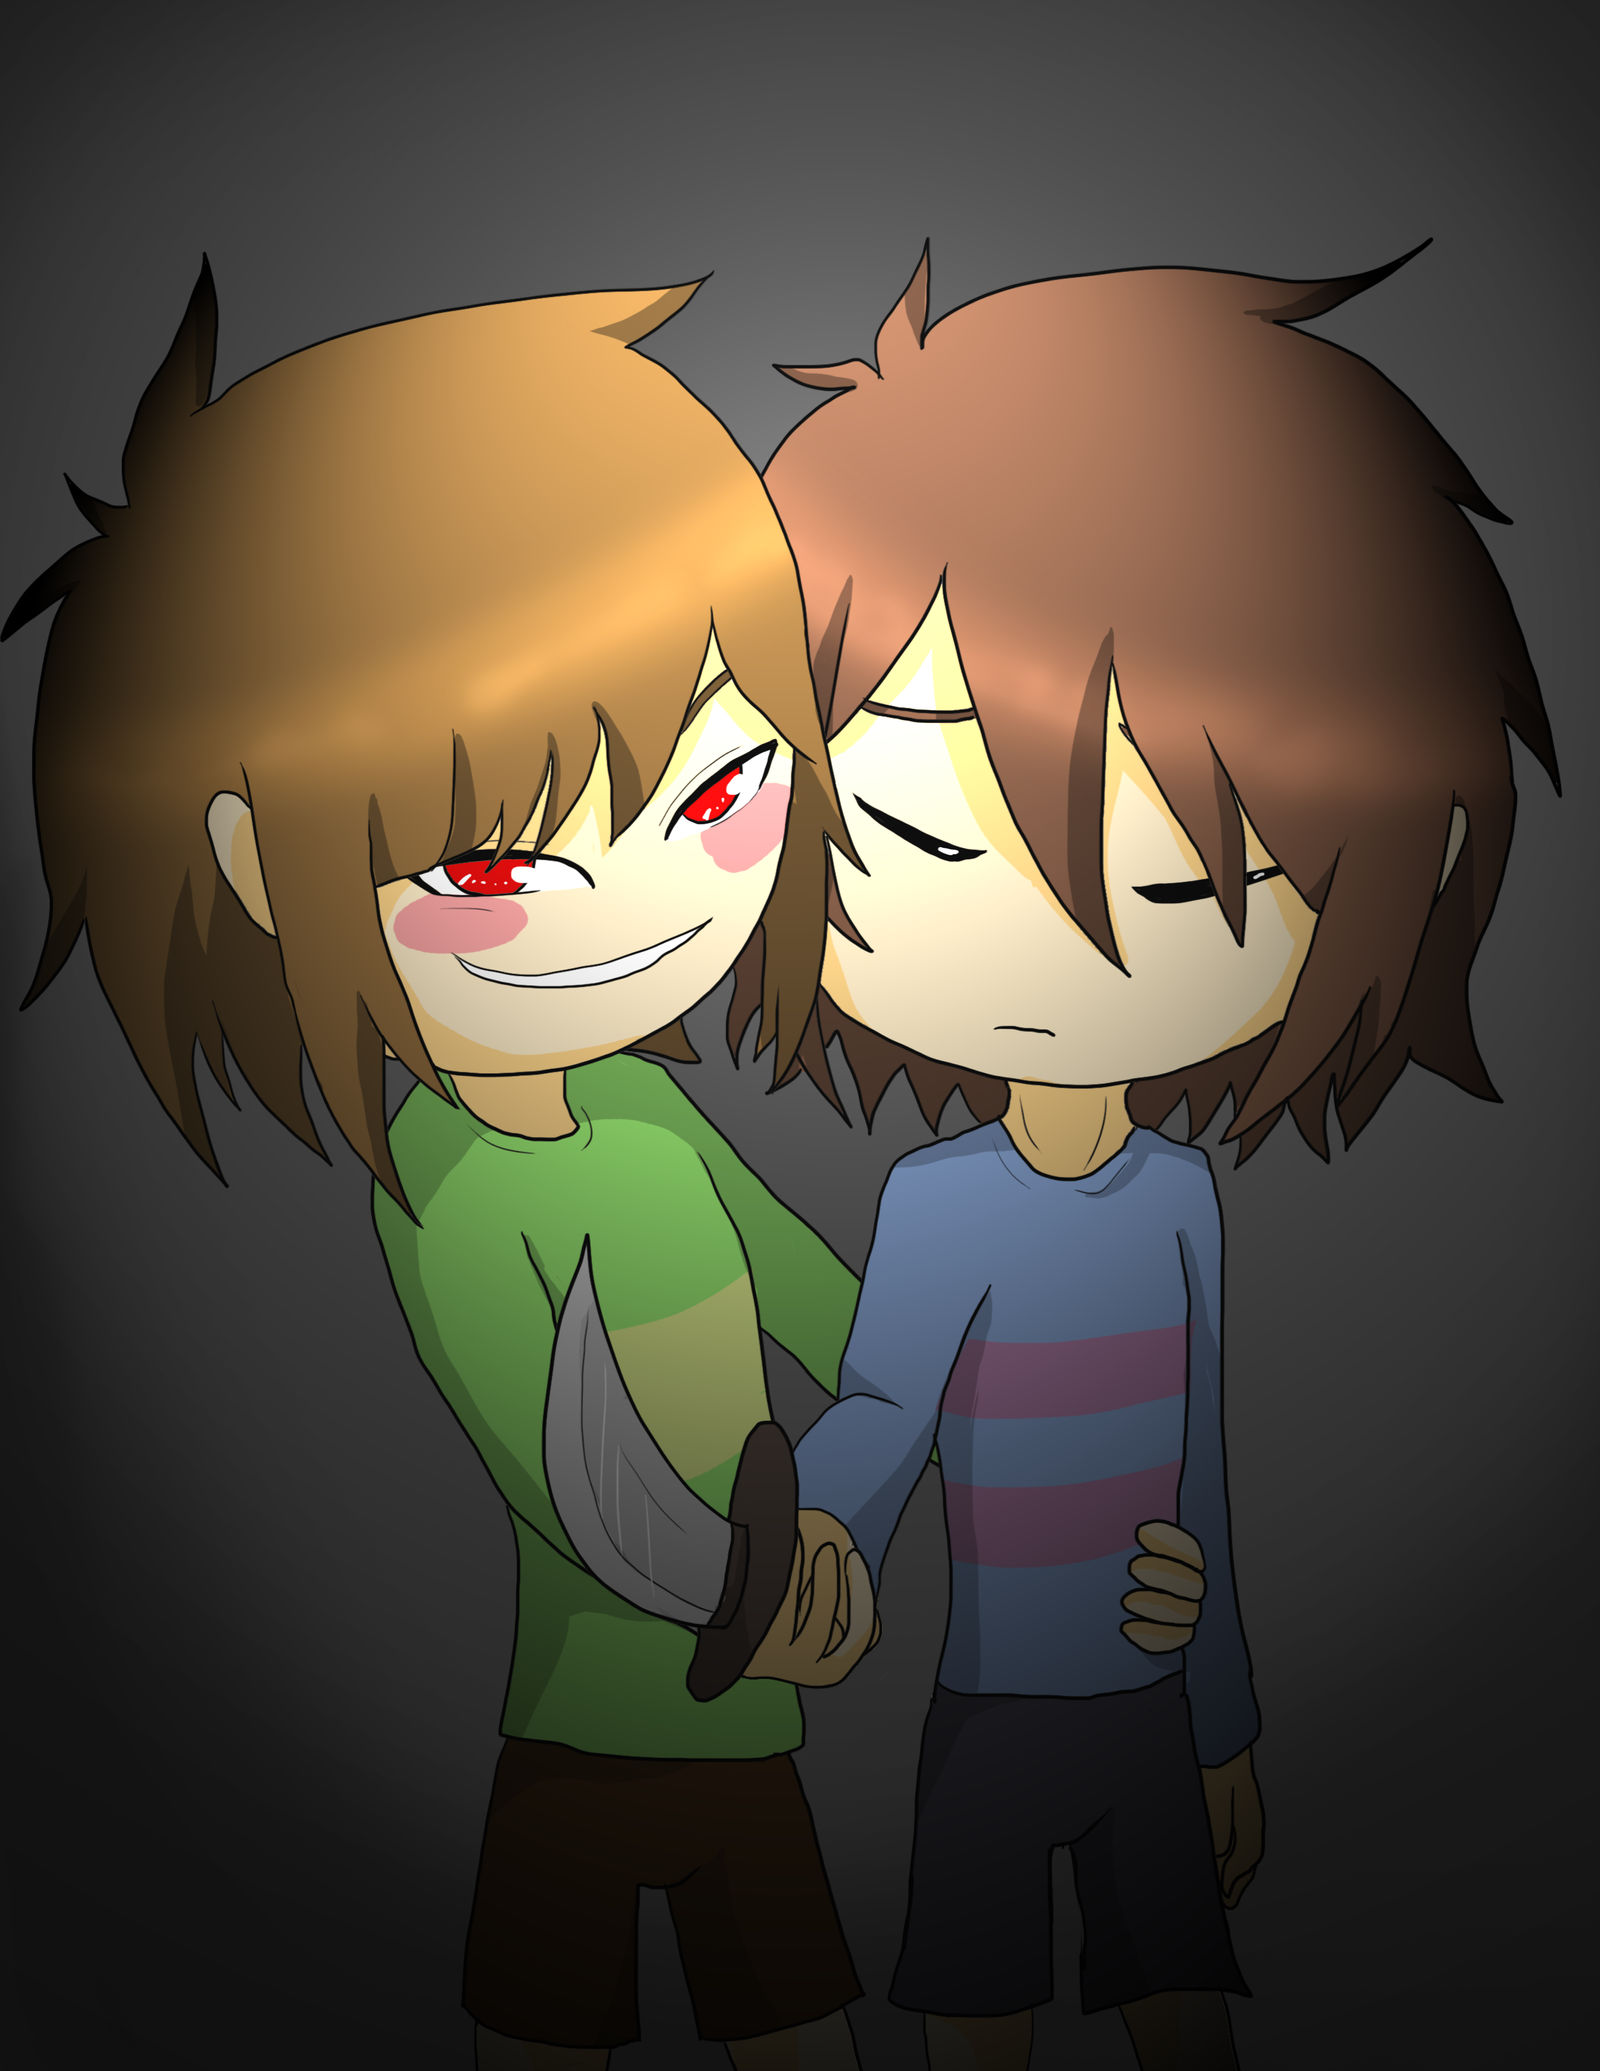 Chara And Frisk by ellie201x on DeviantArt